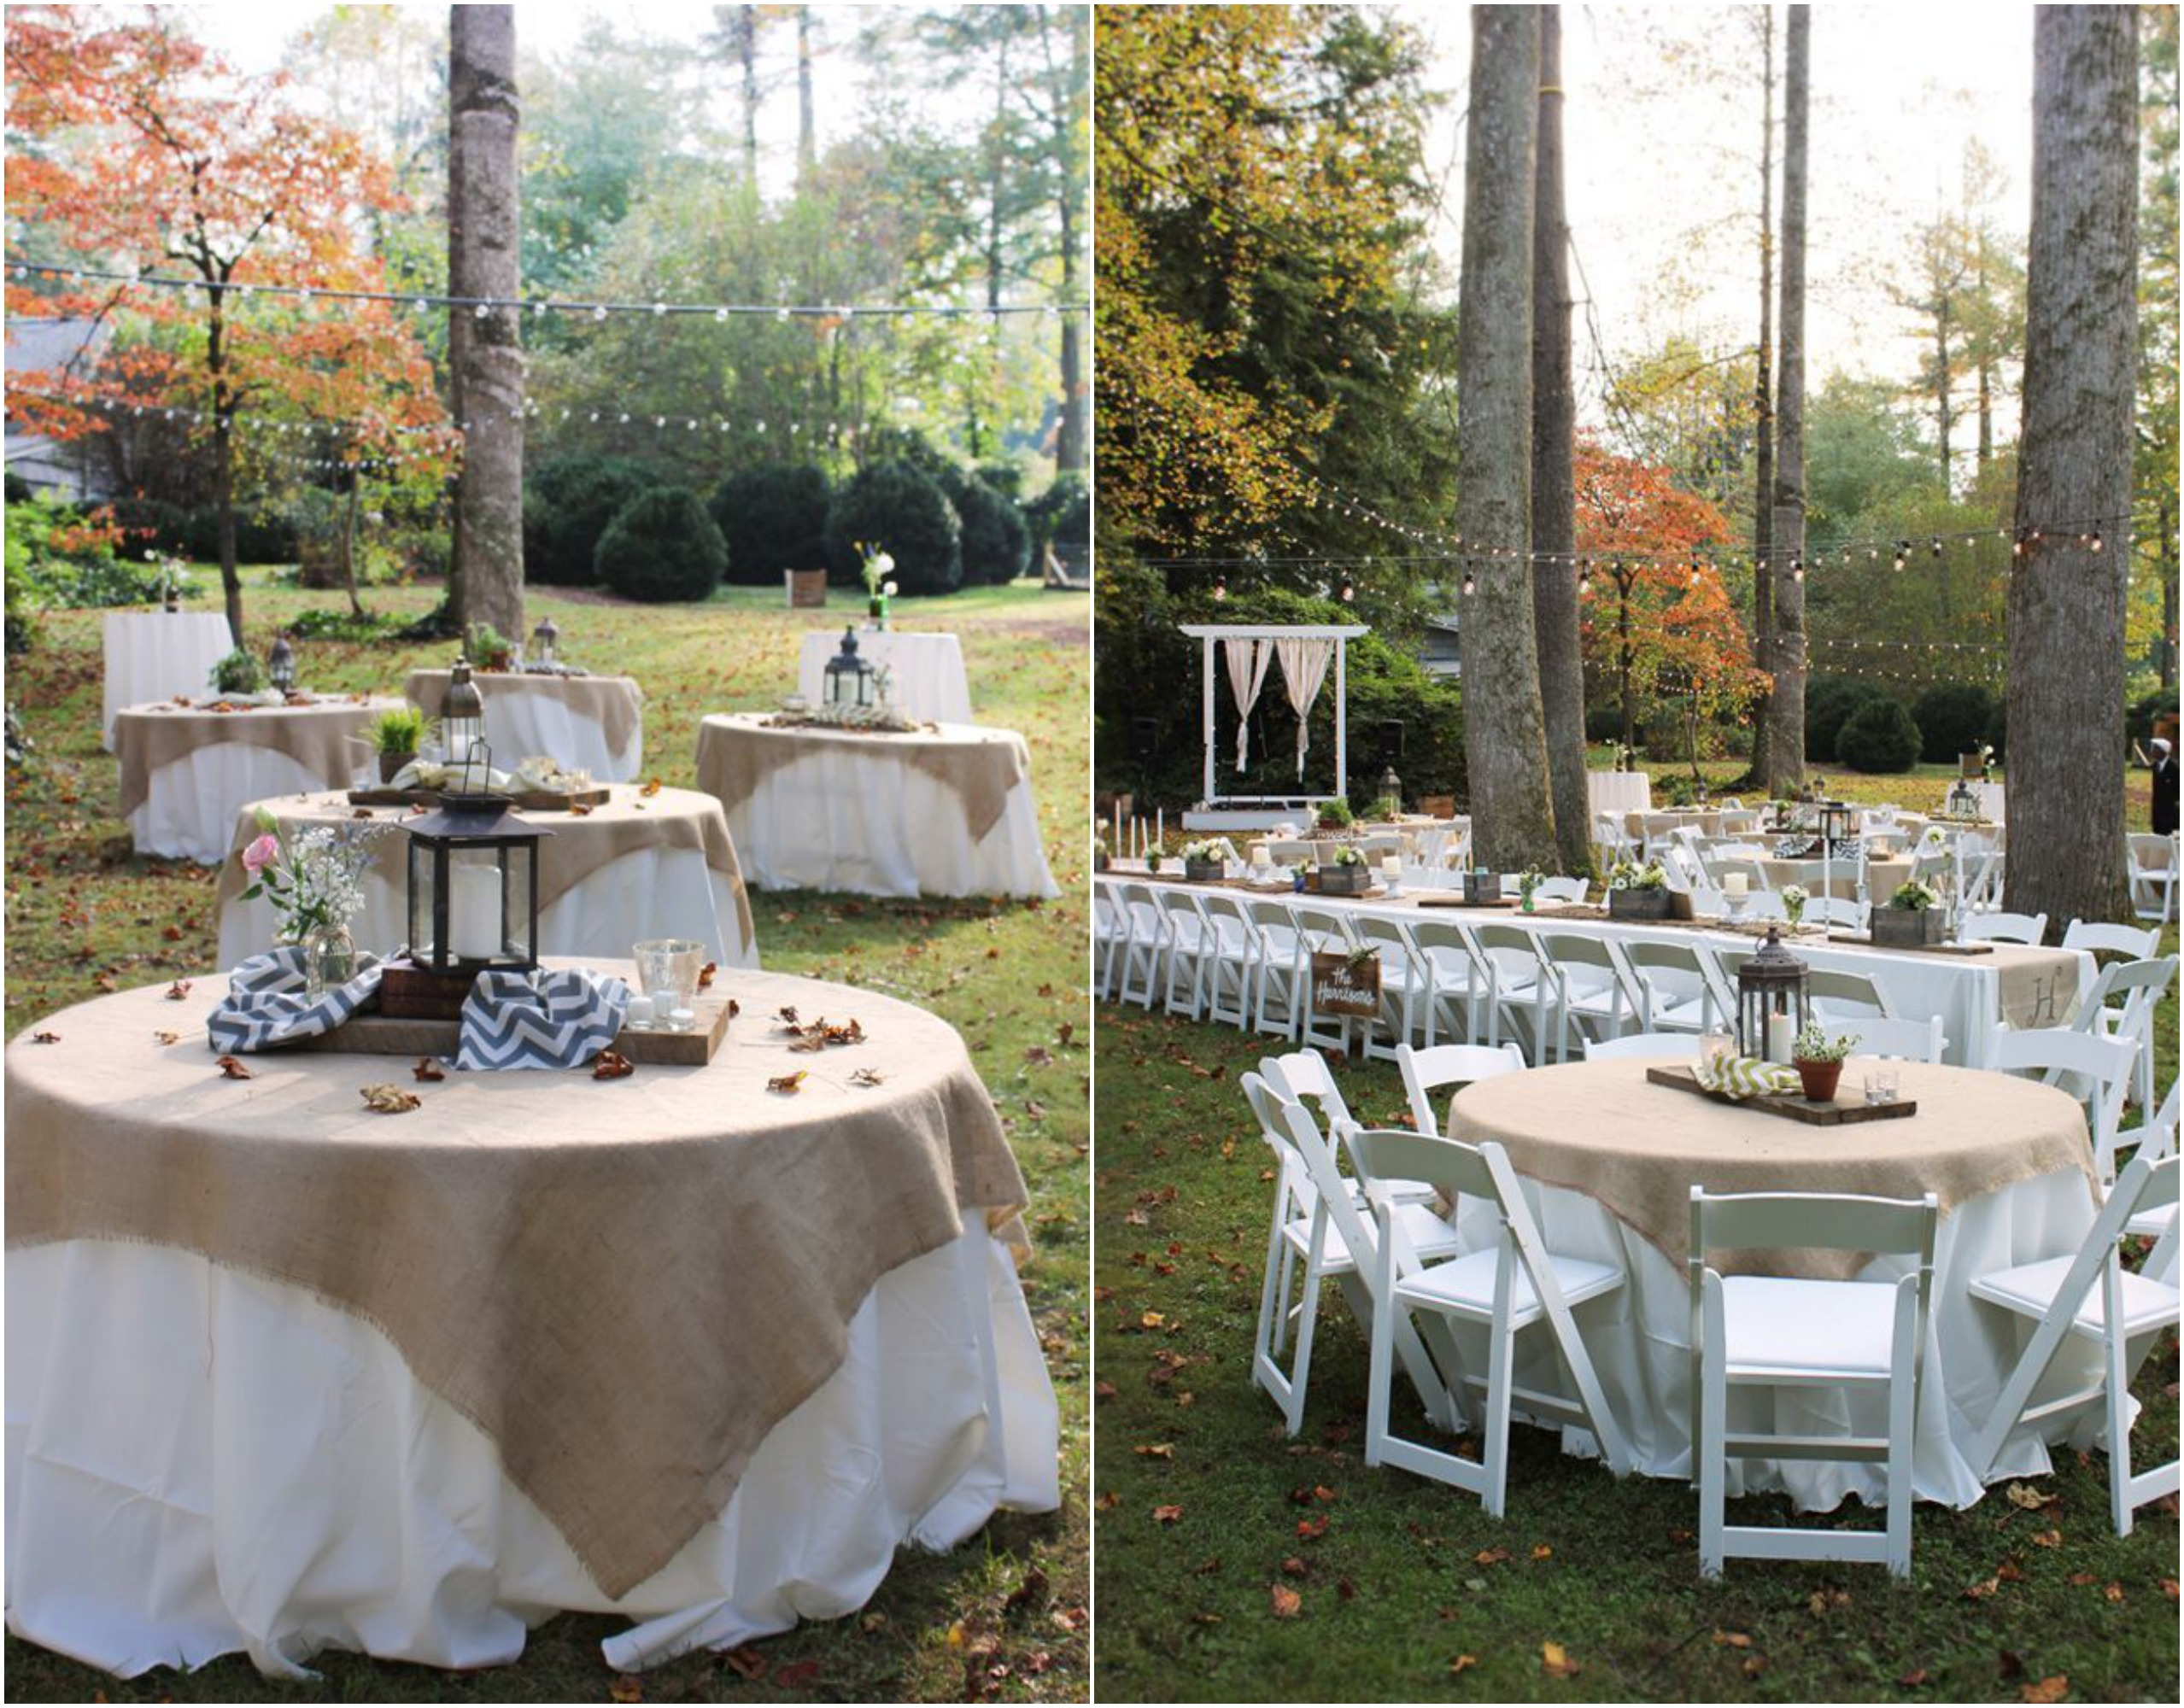 Outdoor Wedding Ideas: The Merry Bride